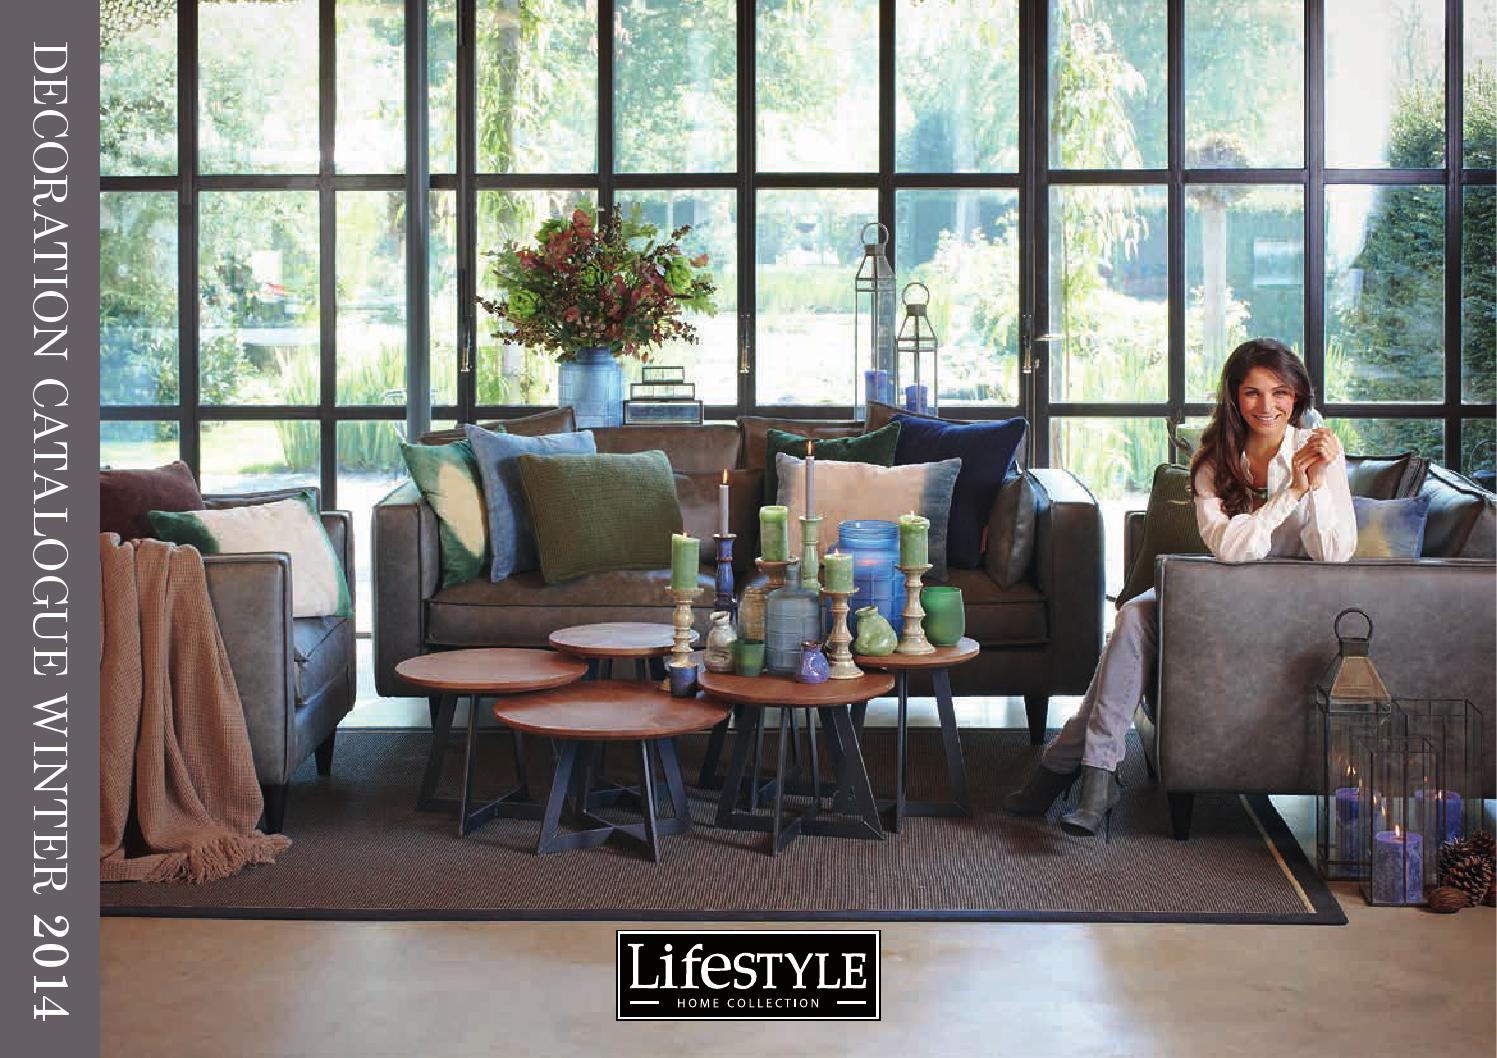 Catalogue De Decoration Interieur Isa Interieur Design Lifestyle By Isabelle Van Etten Issuu